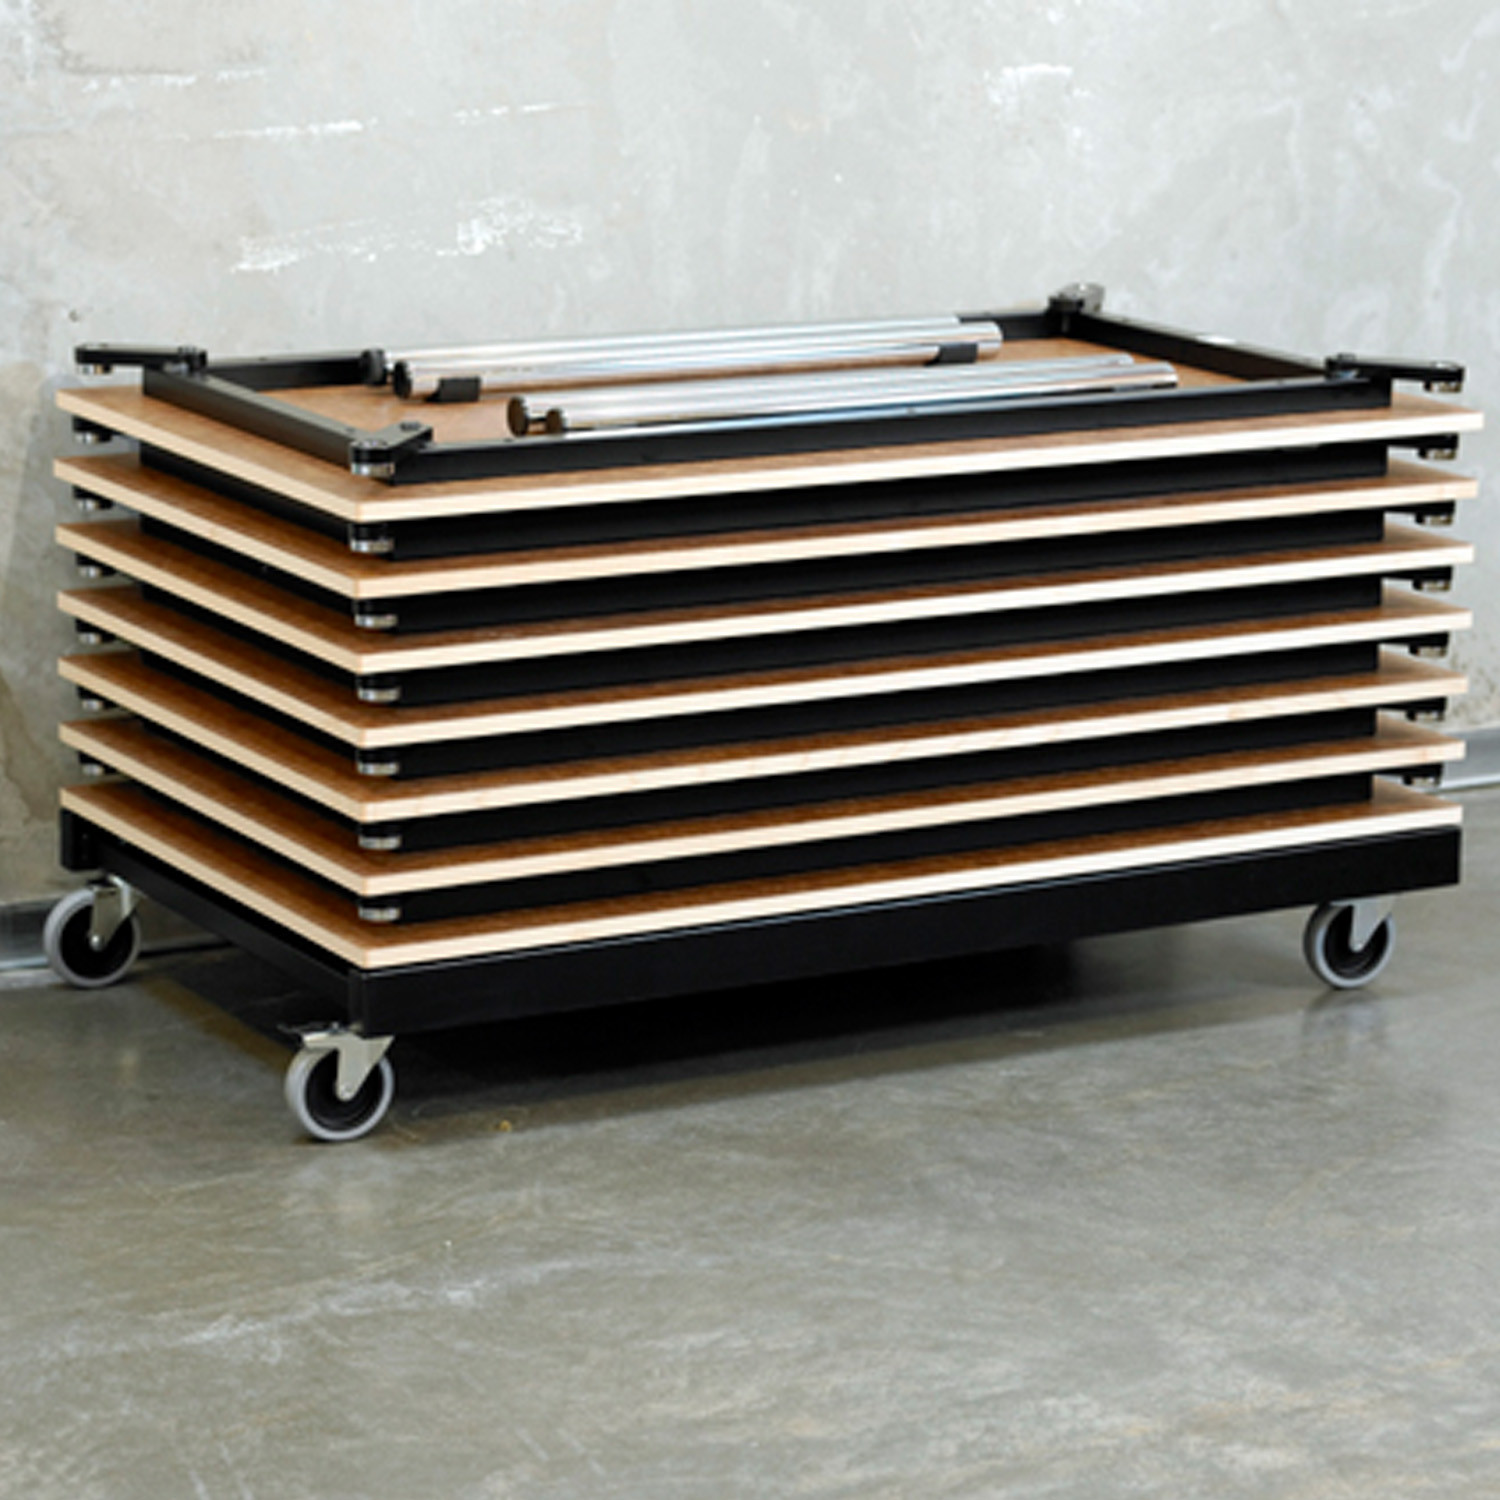 Rail Tables by Randers+Radius